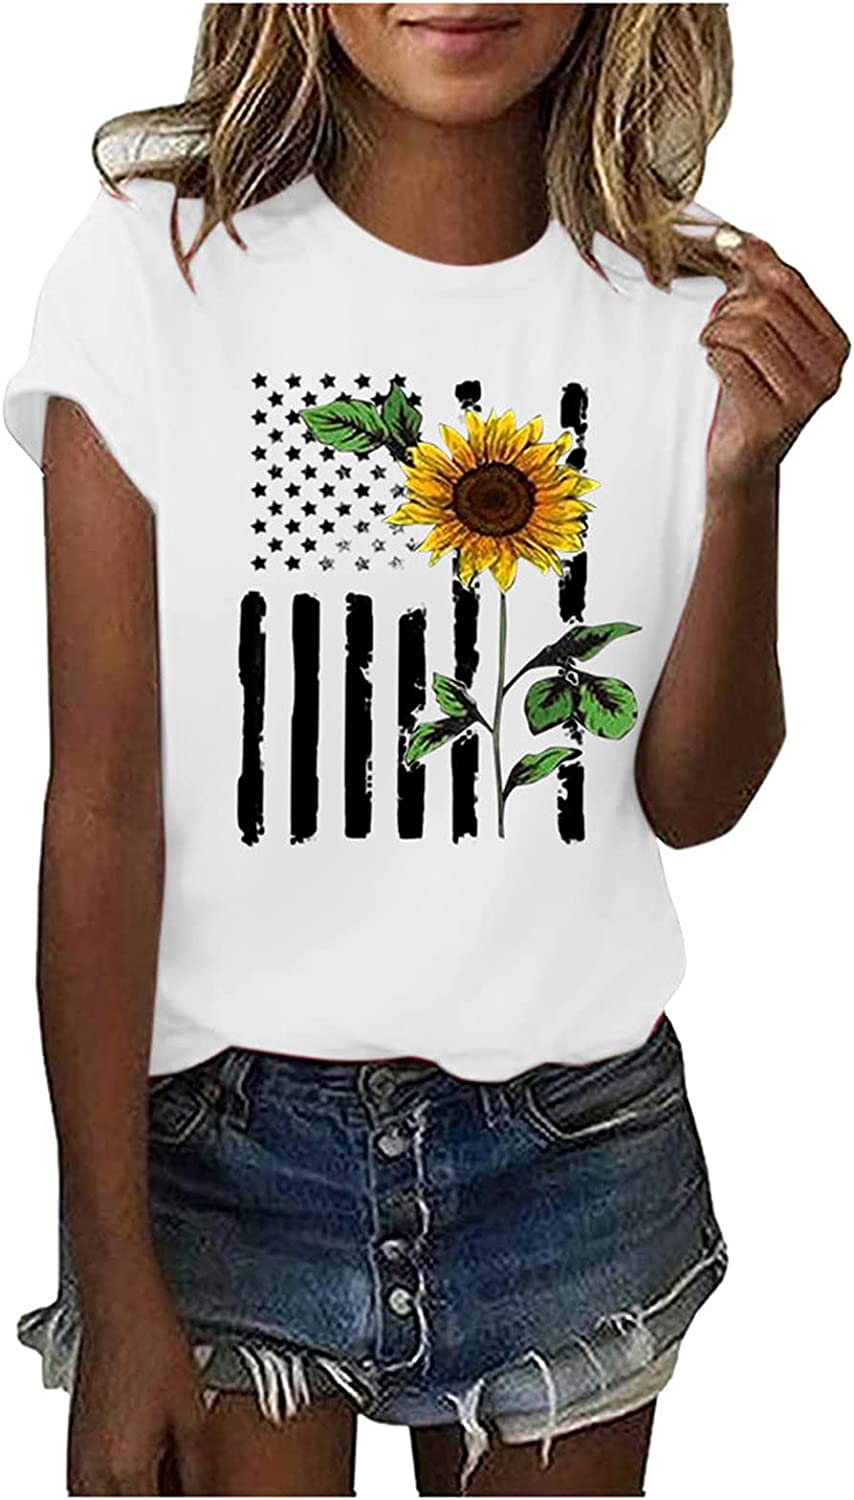 Fanteecy Womens American Flag Star Tank Tops Cute July 4th Independence Day Sunflower Graphic Tees T-Shirts